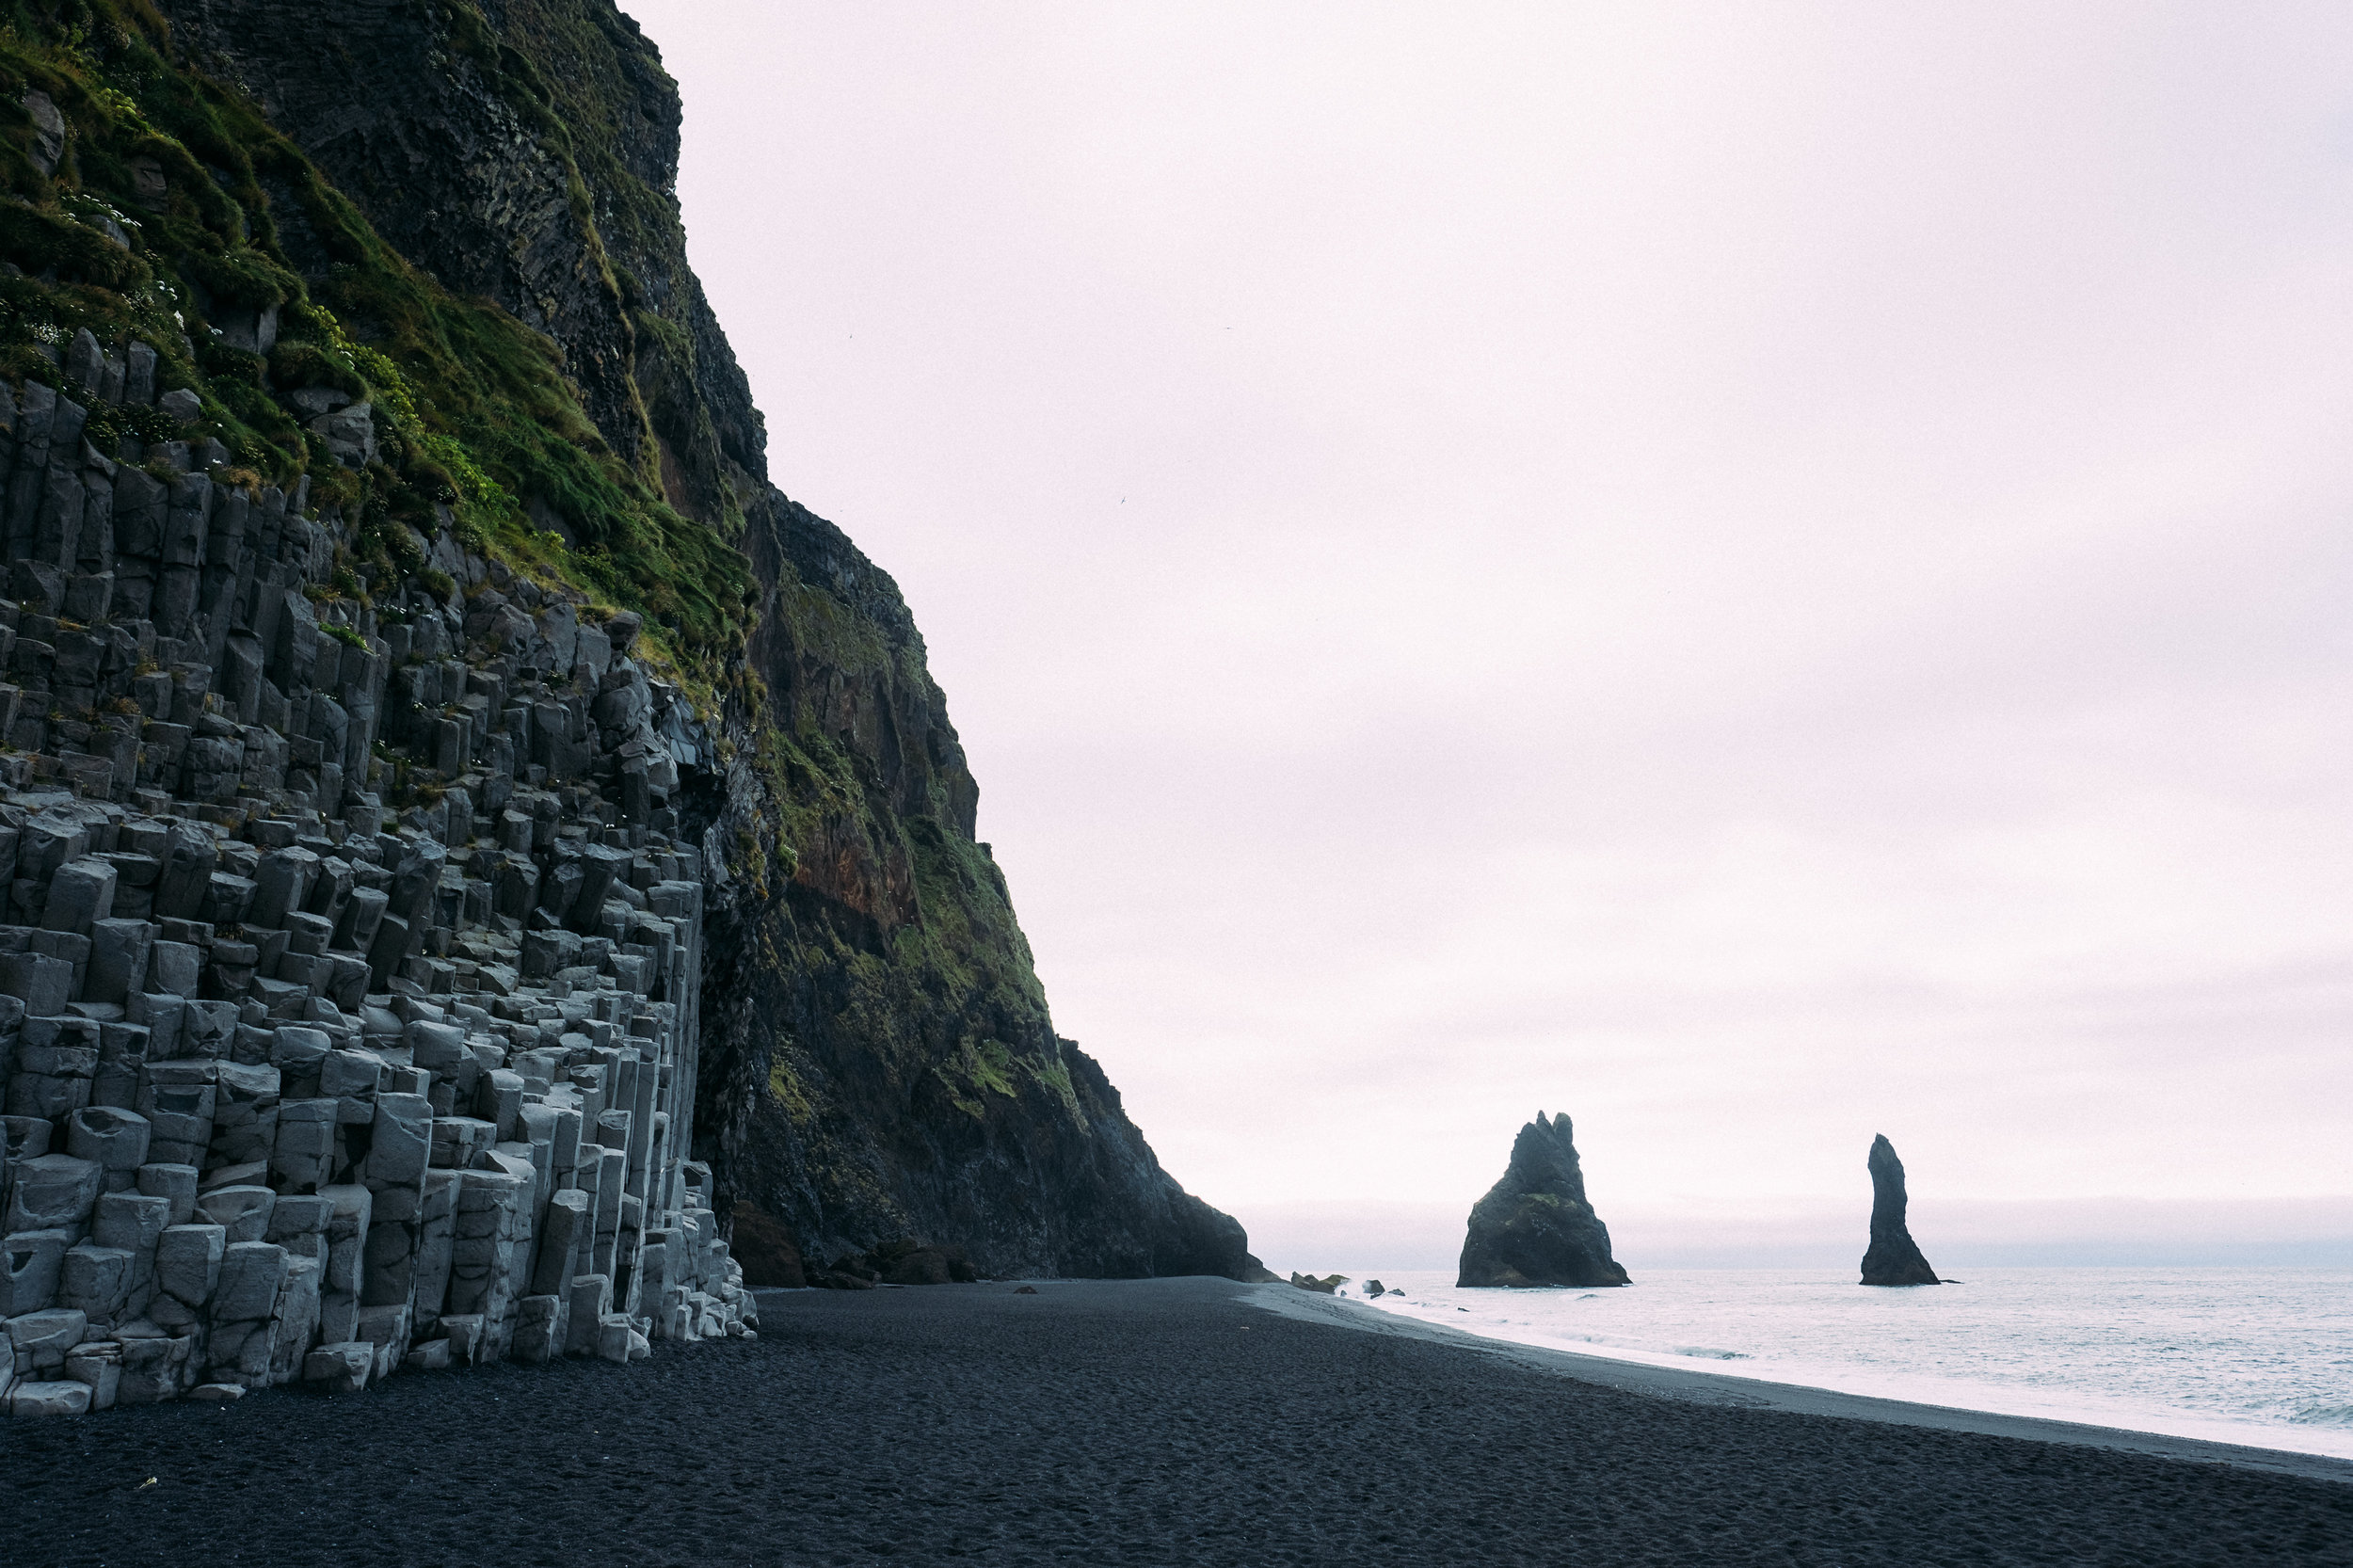 The Reynisdrangar -  Fuji X-H1 + 16mm 1.4 lens